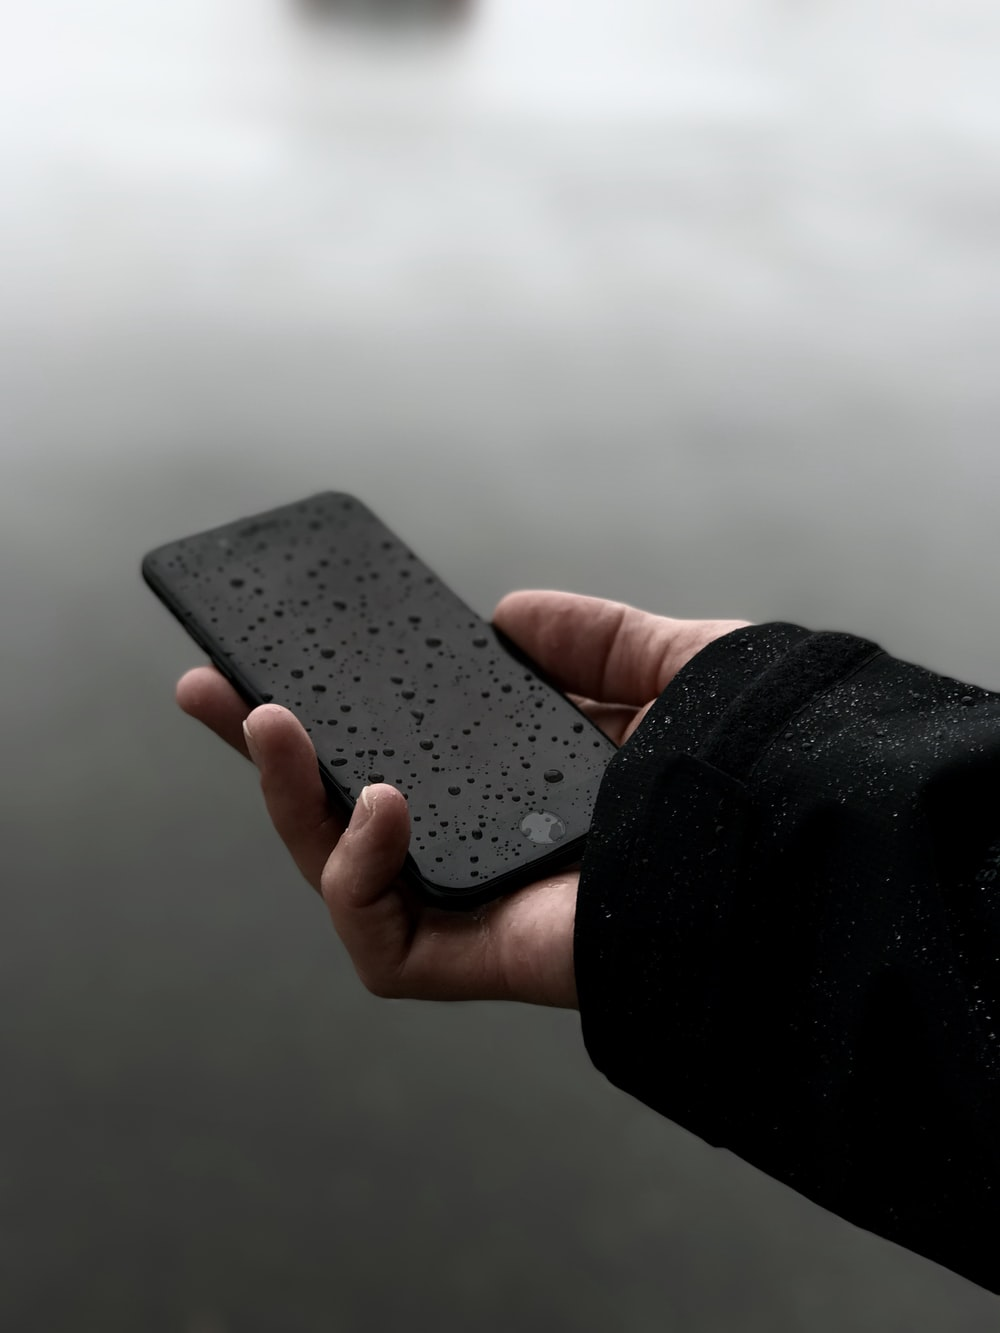 person holding iPhone